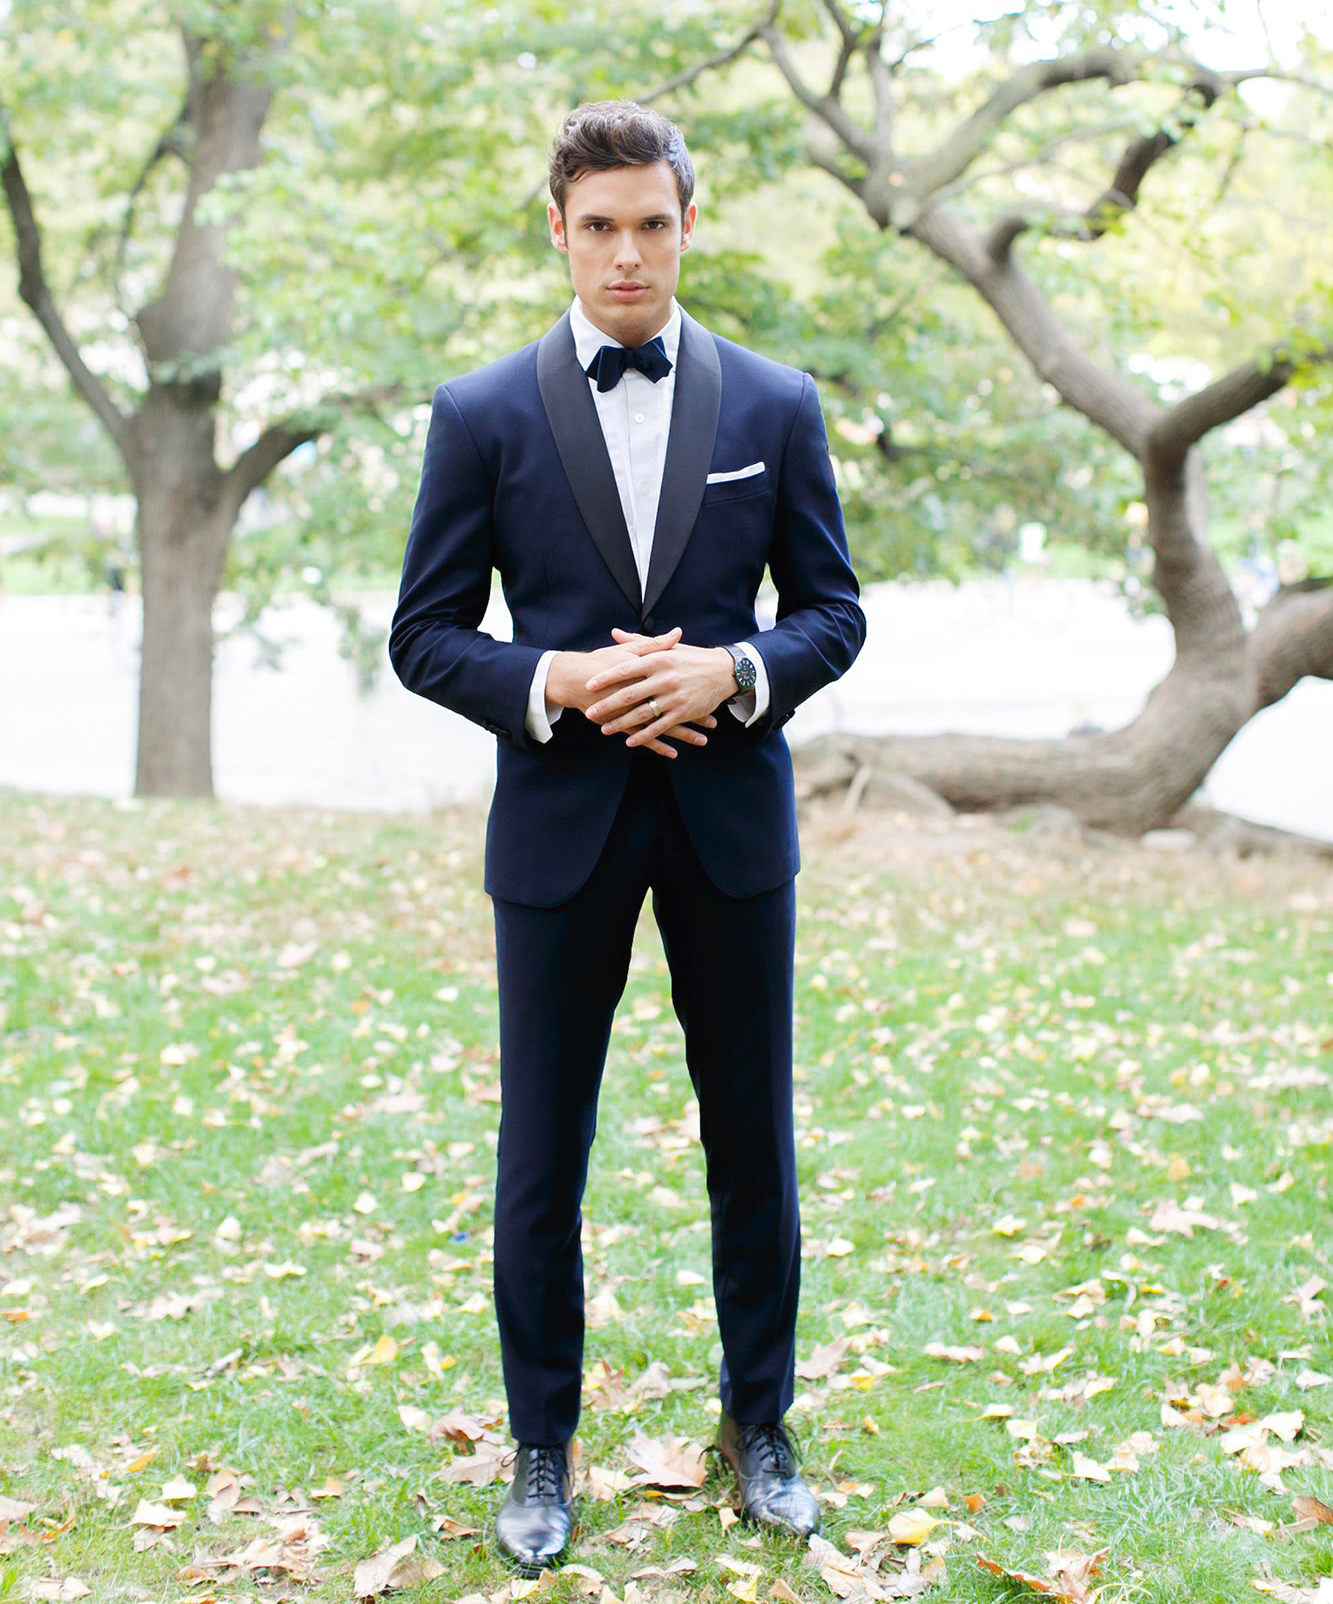 Own your formal wedding suit instead of renting it